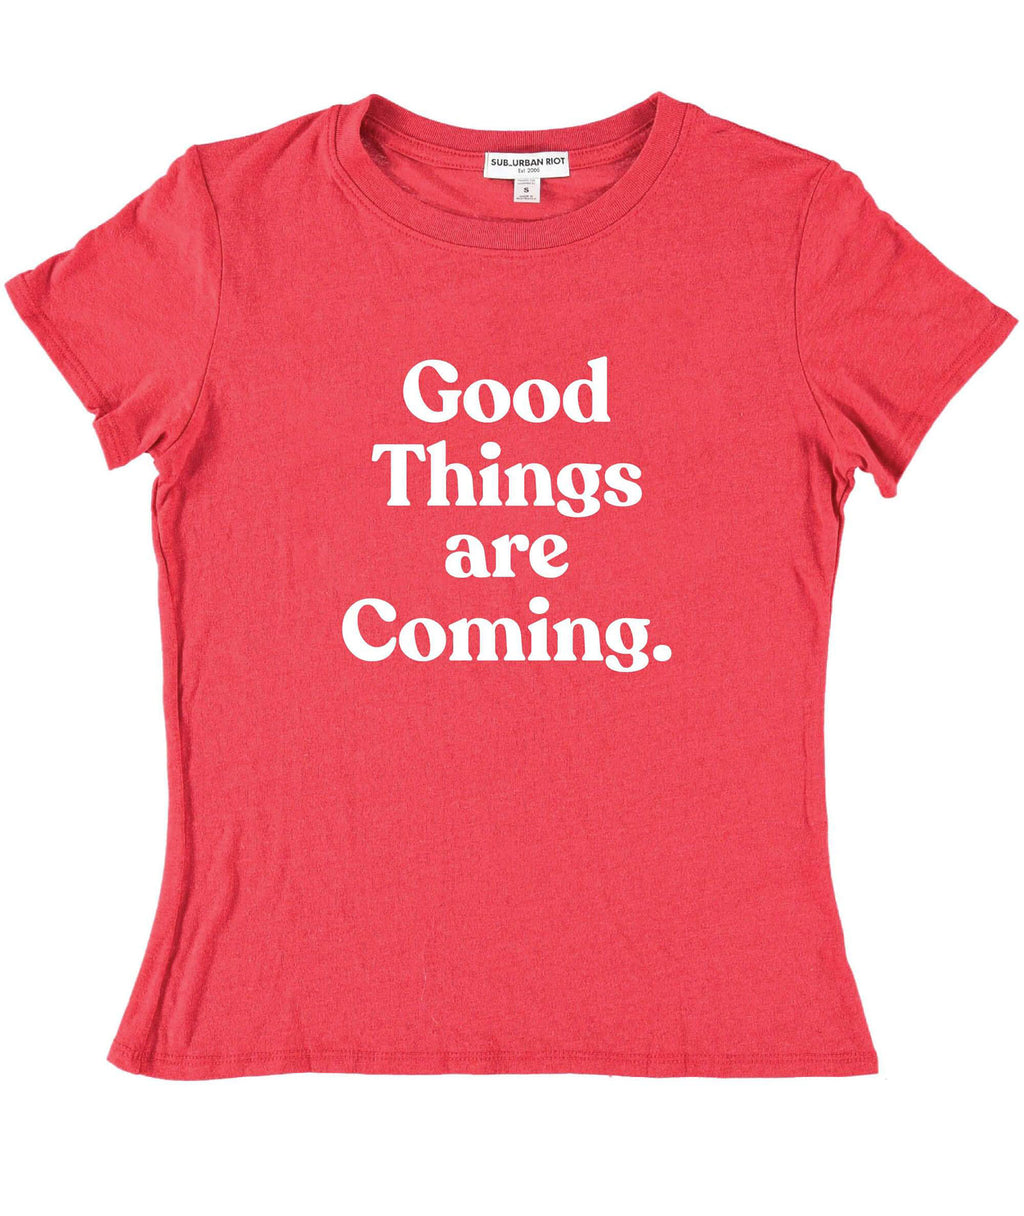 Sub_Urban Riot Girls Red Good Things Are Coming Tee